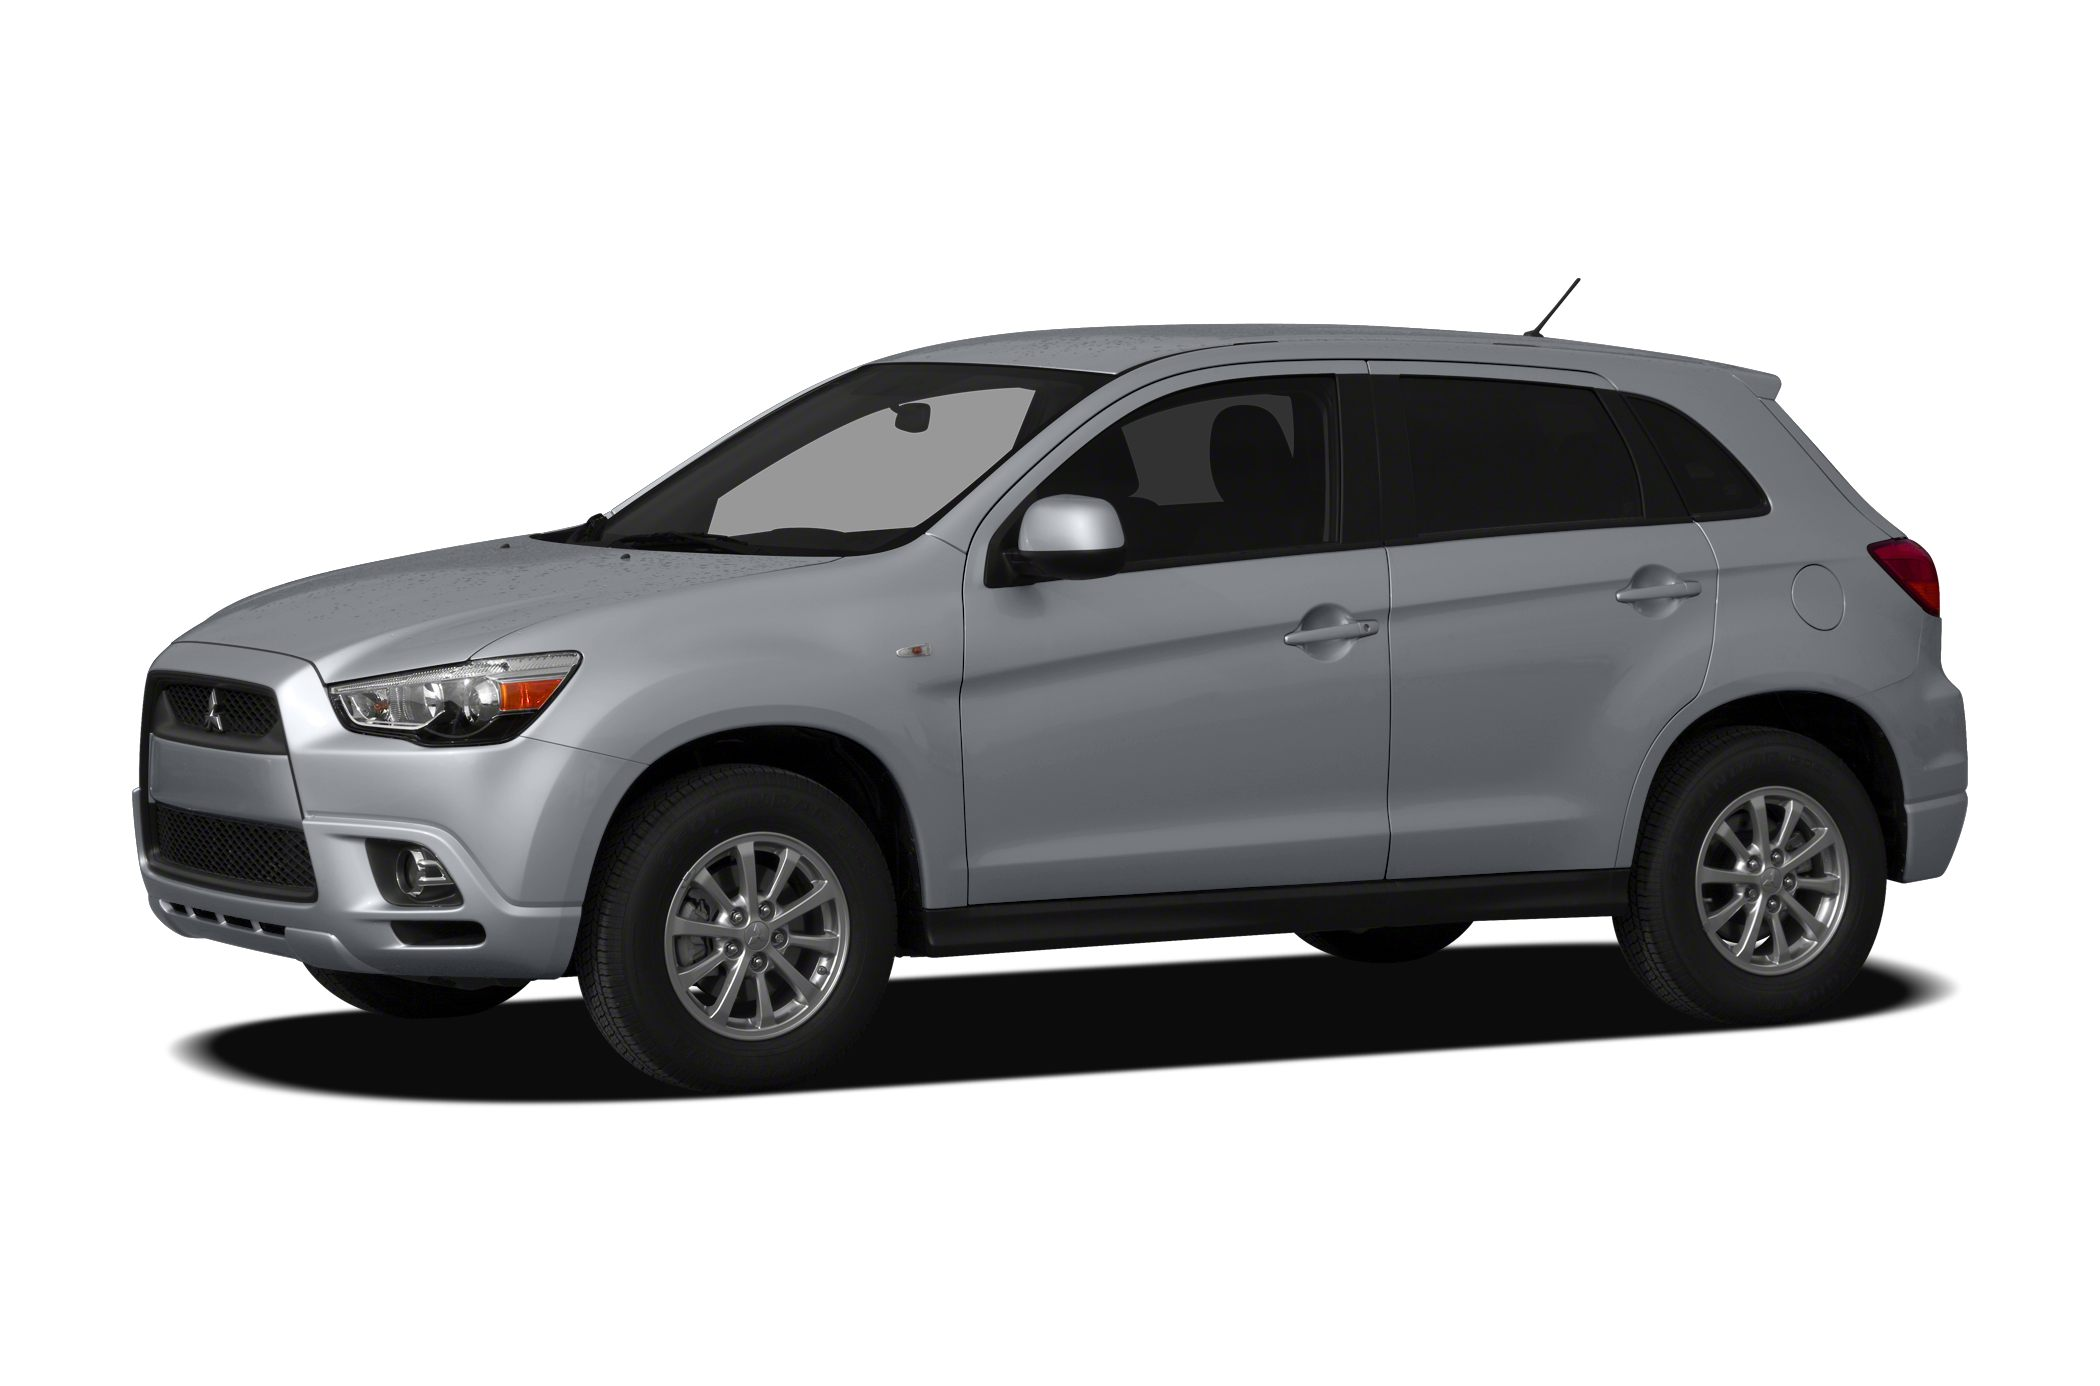 2011 Mitsubishi Outlander Sport SE SUV for sale in Cleveland for $13,880 with 43,135 miles.